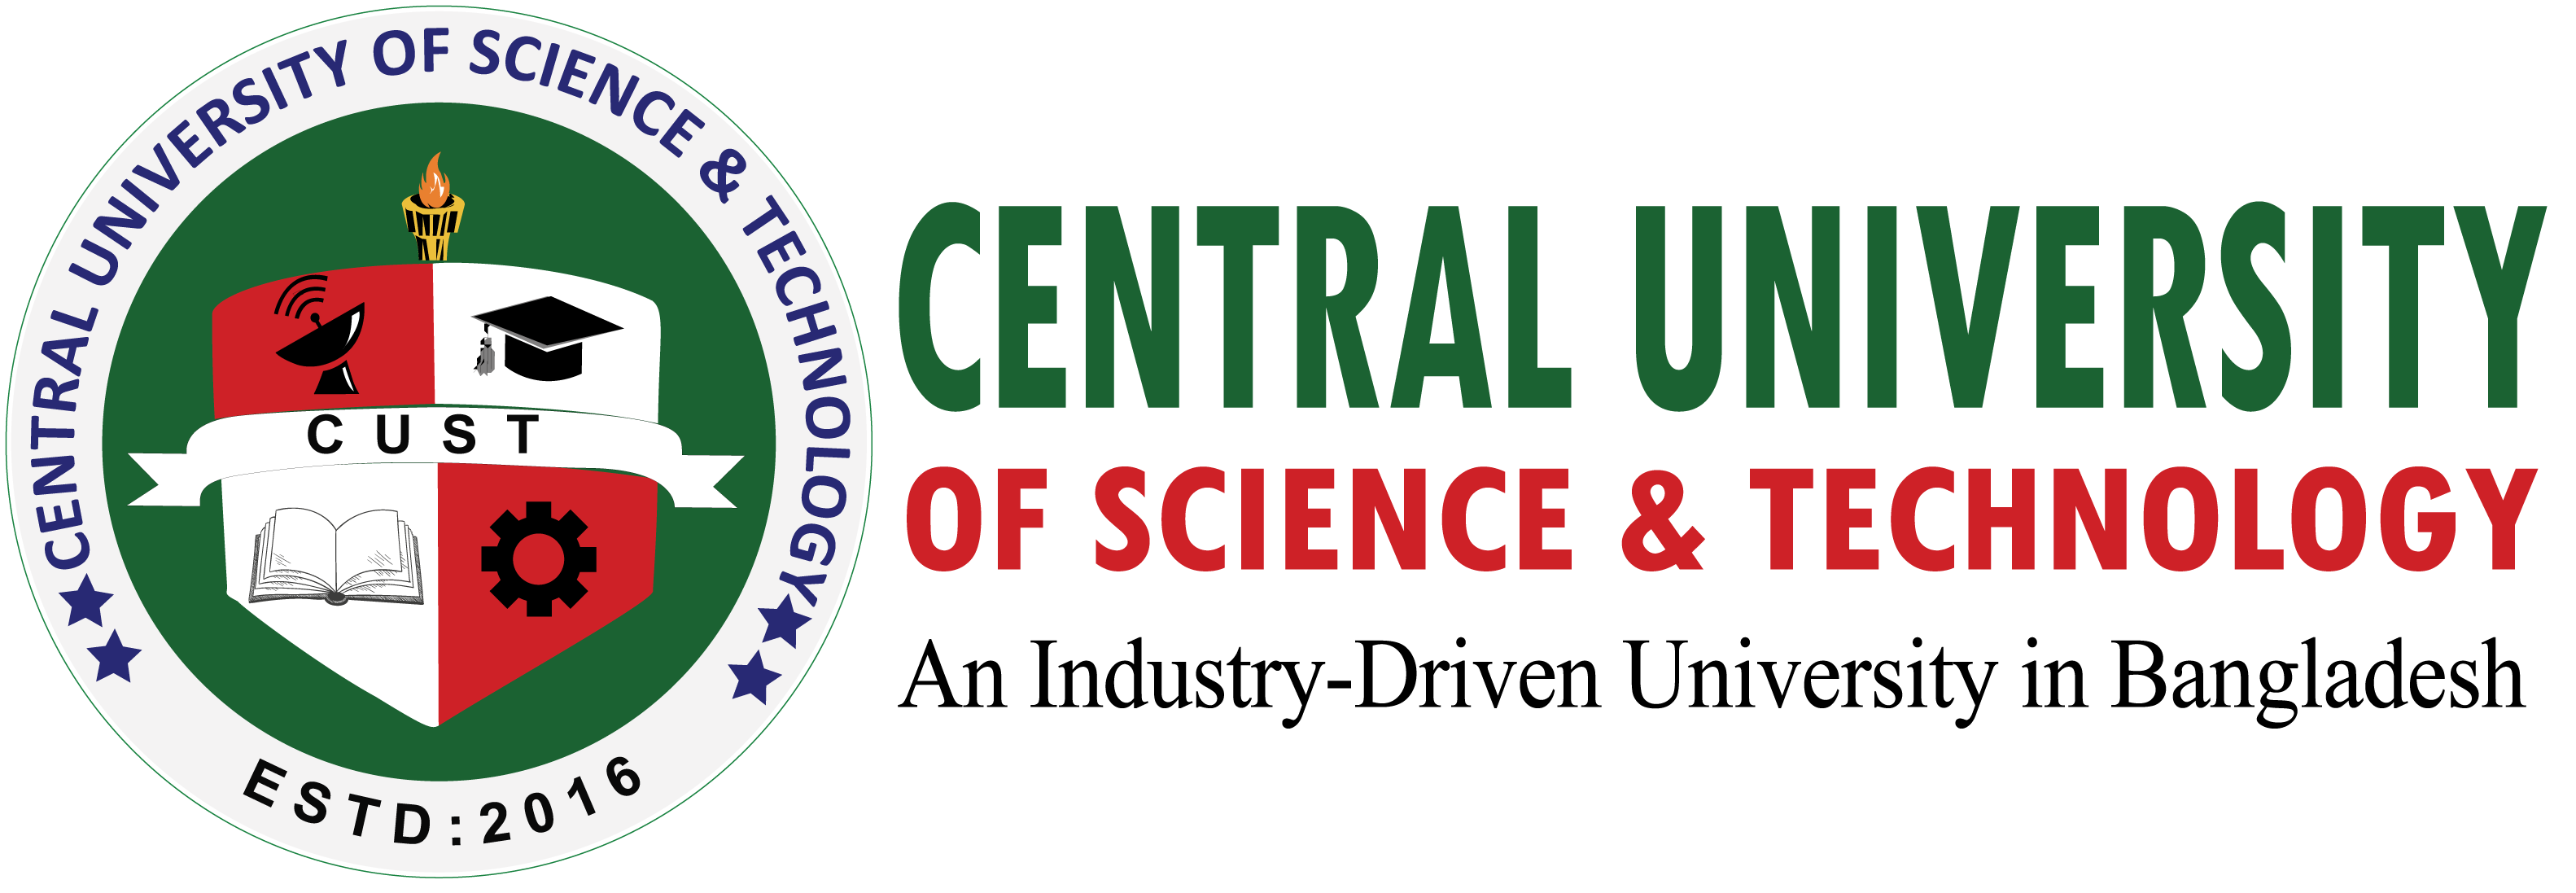 Grading Policy - Central University of Science & Technology